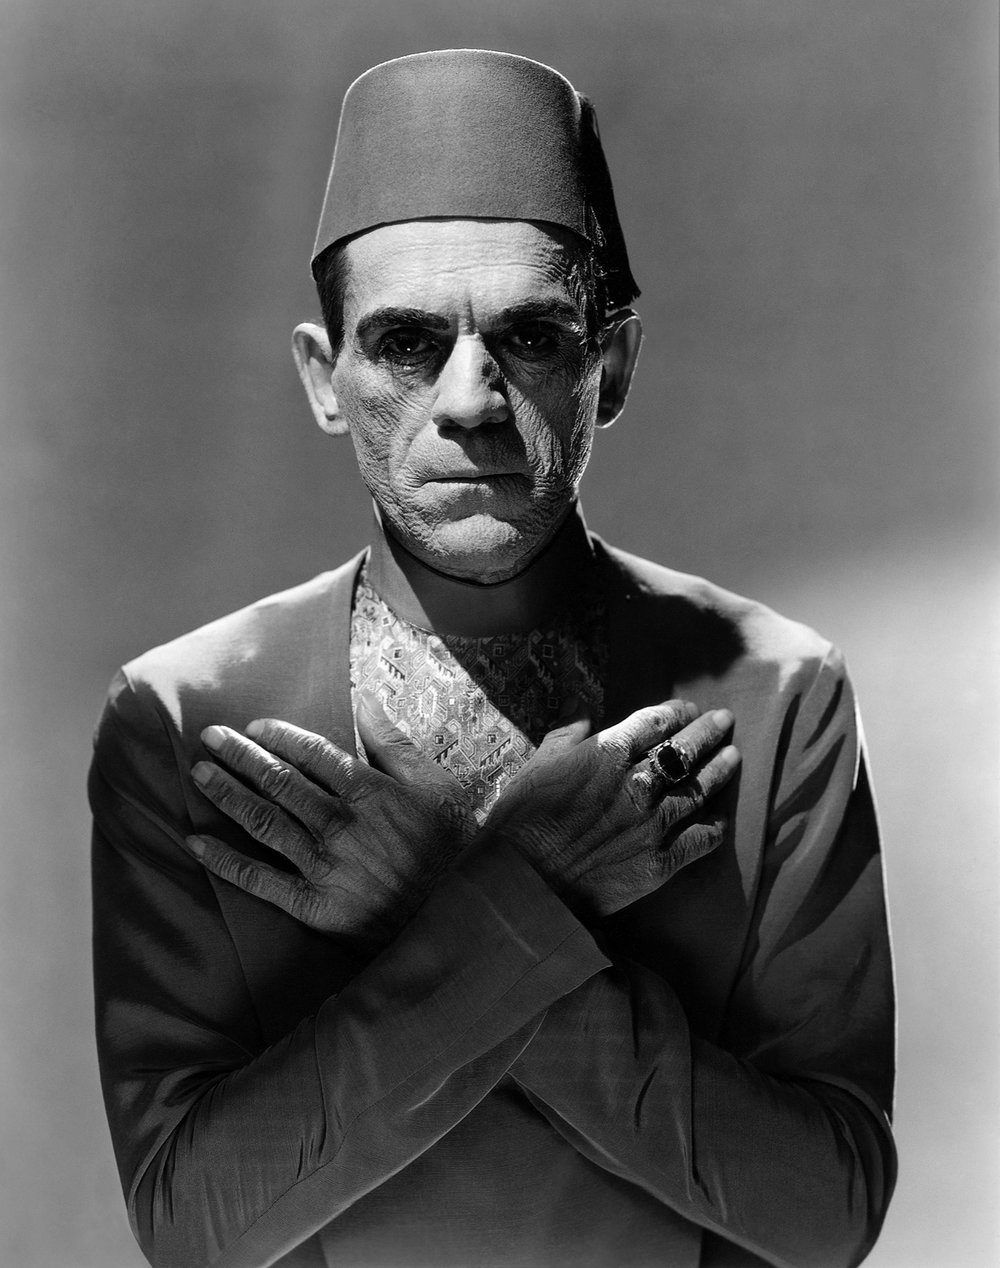 Boris Karloff, The Mummy, 1932